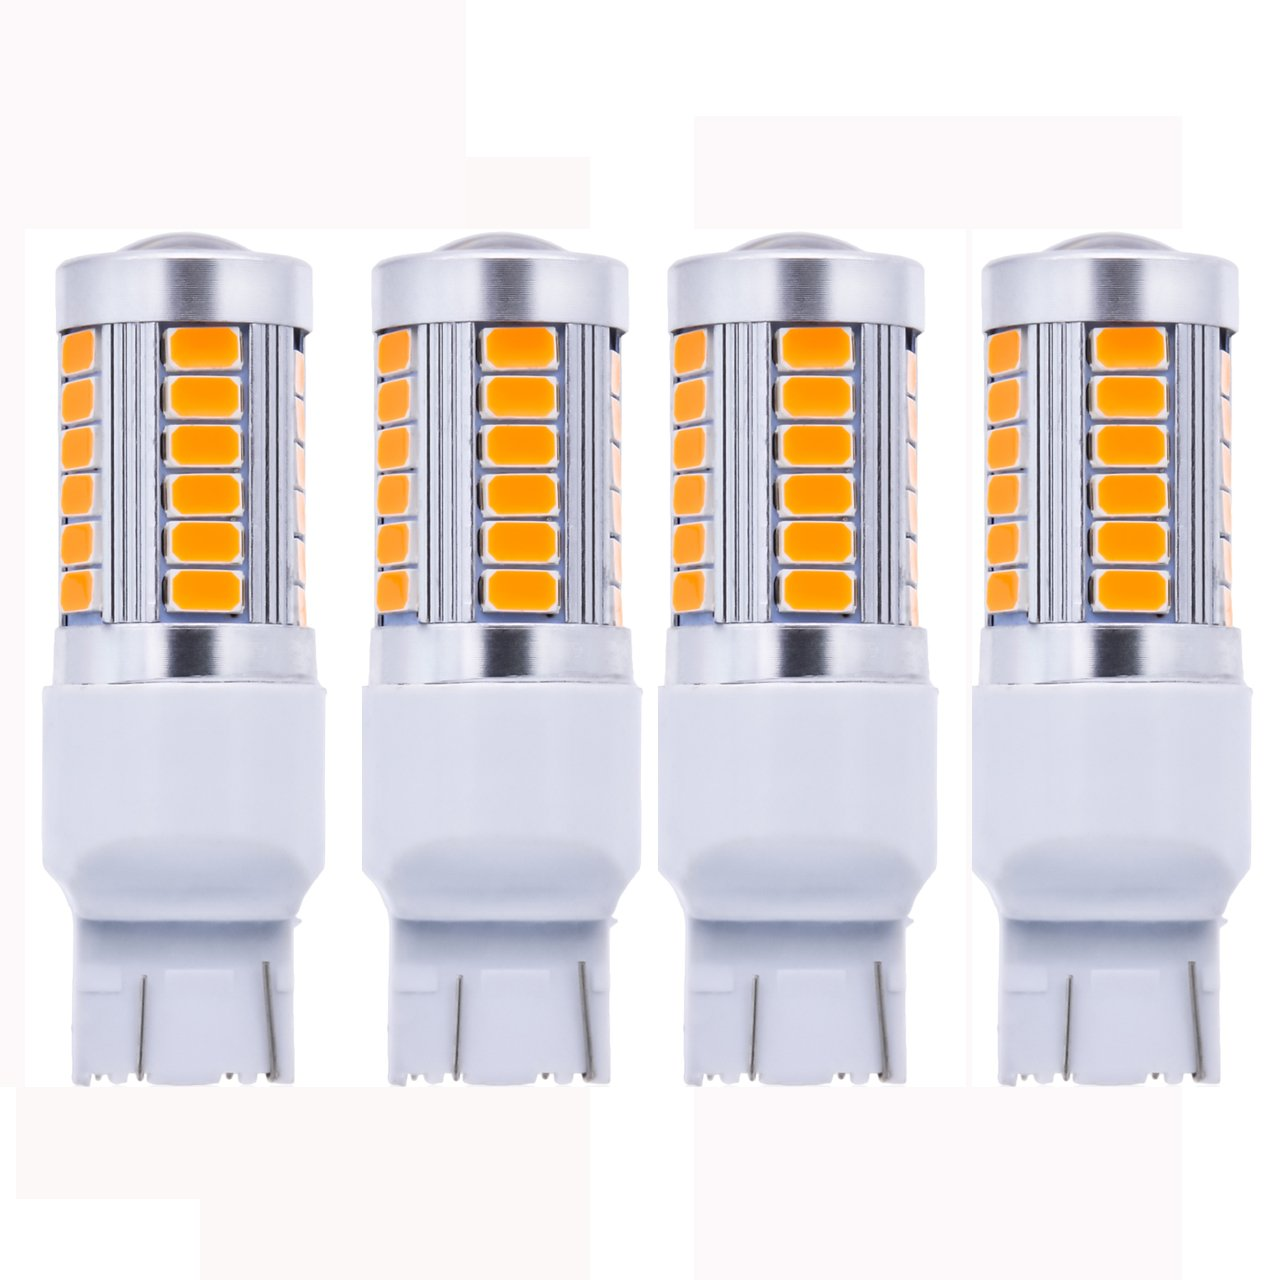 KATUR 10 x Amber 7443 1210 54-SMD 800 Lumens LED Turn Signal Light Bulb 12V Replacement for Car Incandescence Bulb Interior RV Camper Bulb Tail Brake Stop Parking Lights 5W